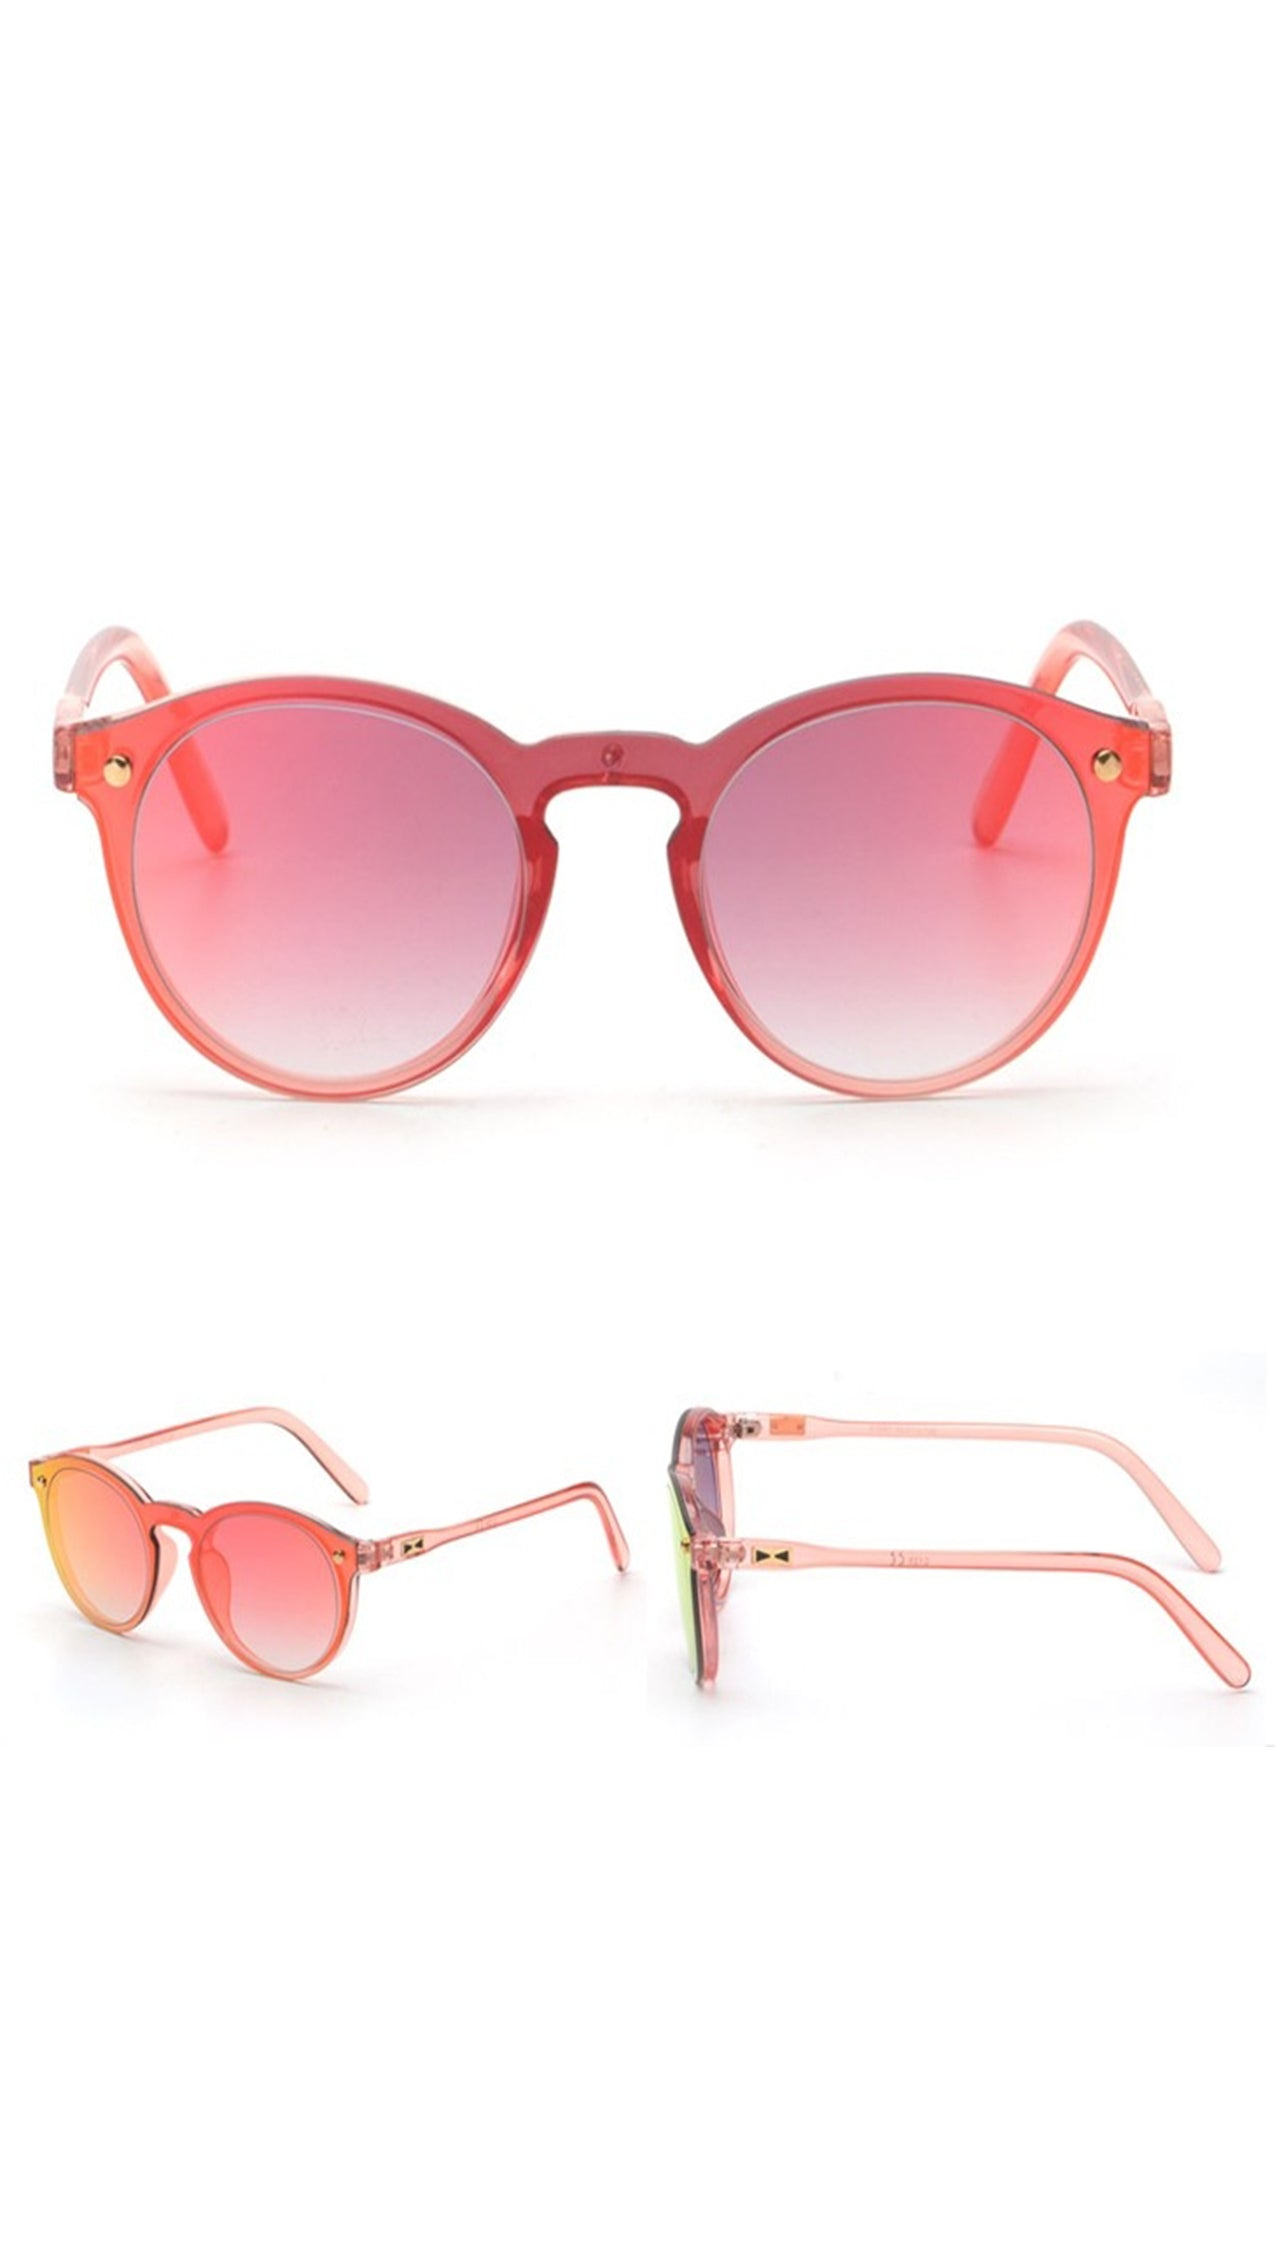 Charlie Shades Sunglasses Red Mirror Reflective Fashion Plastic